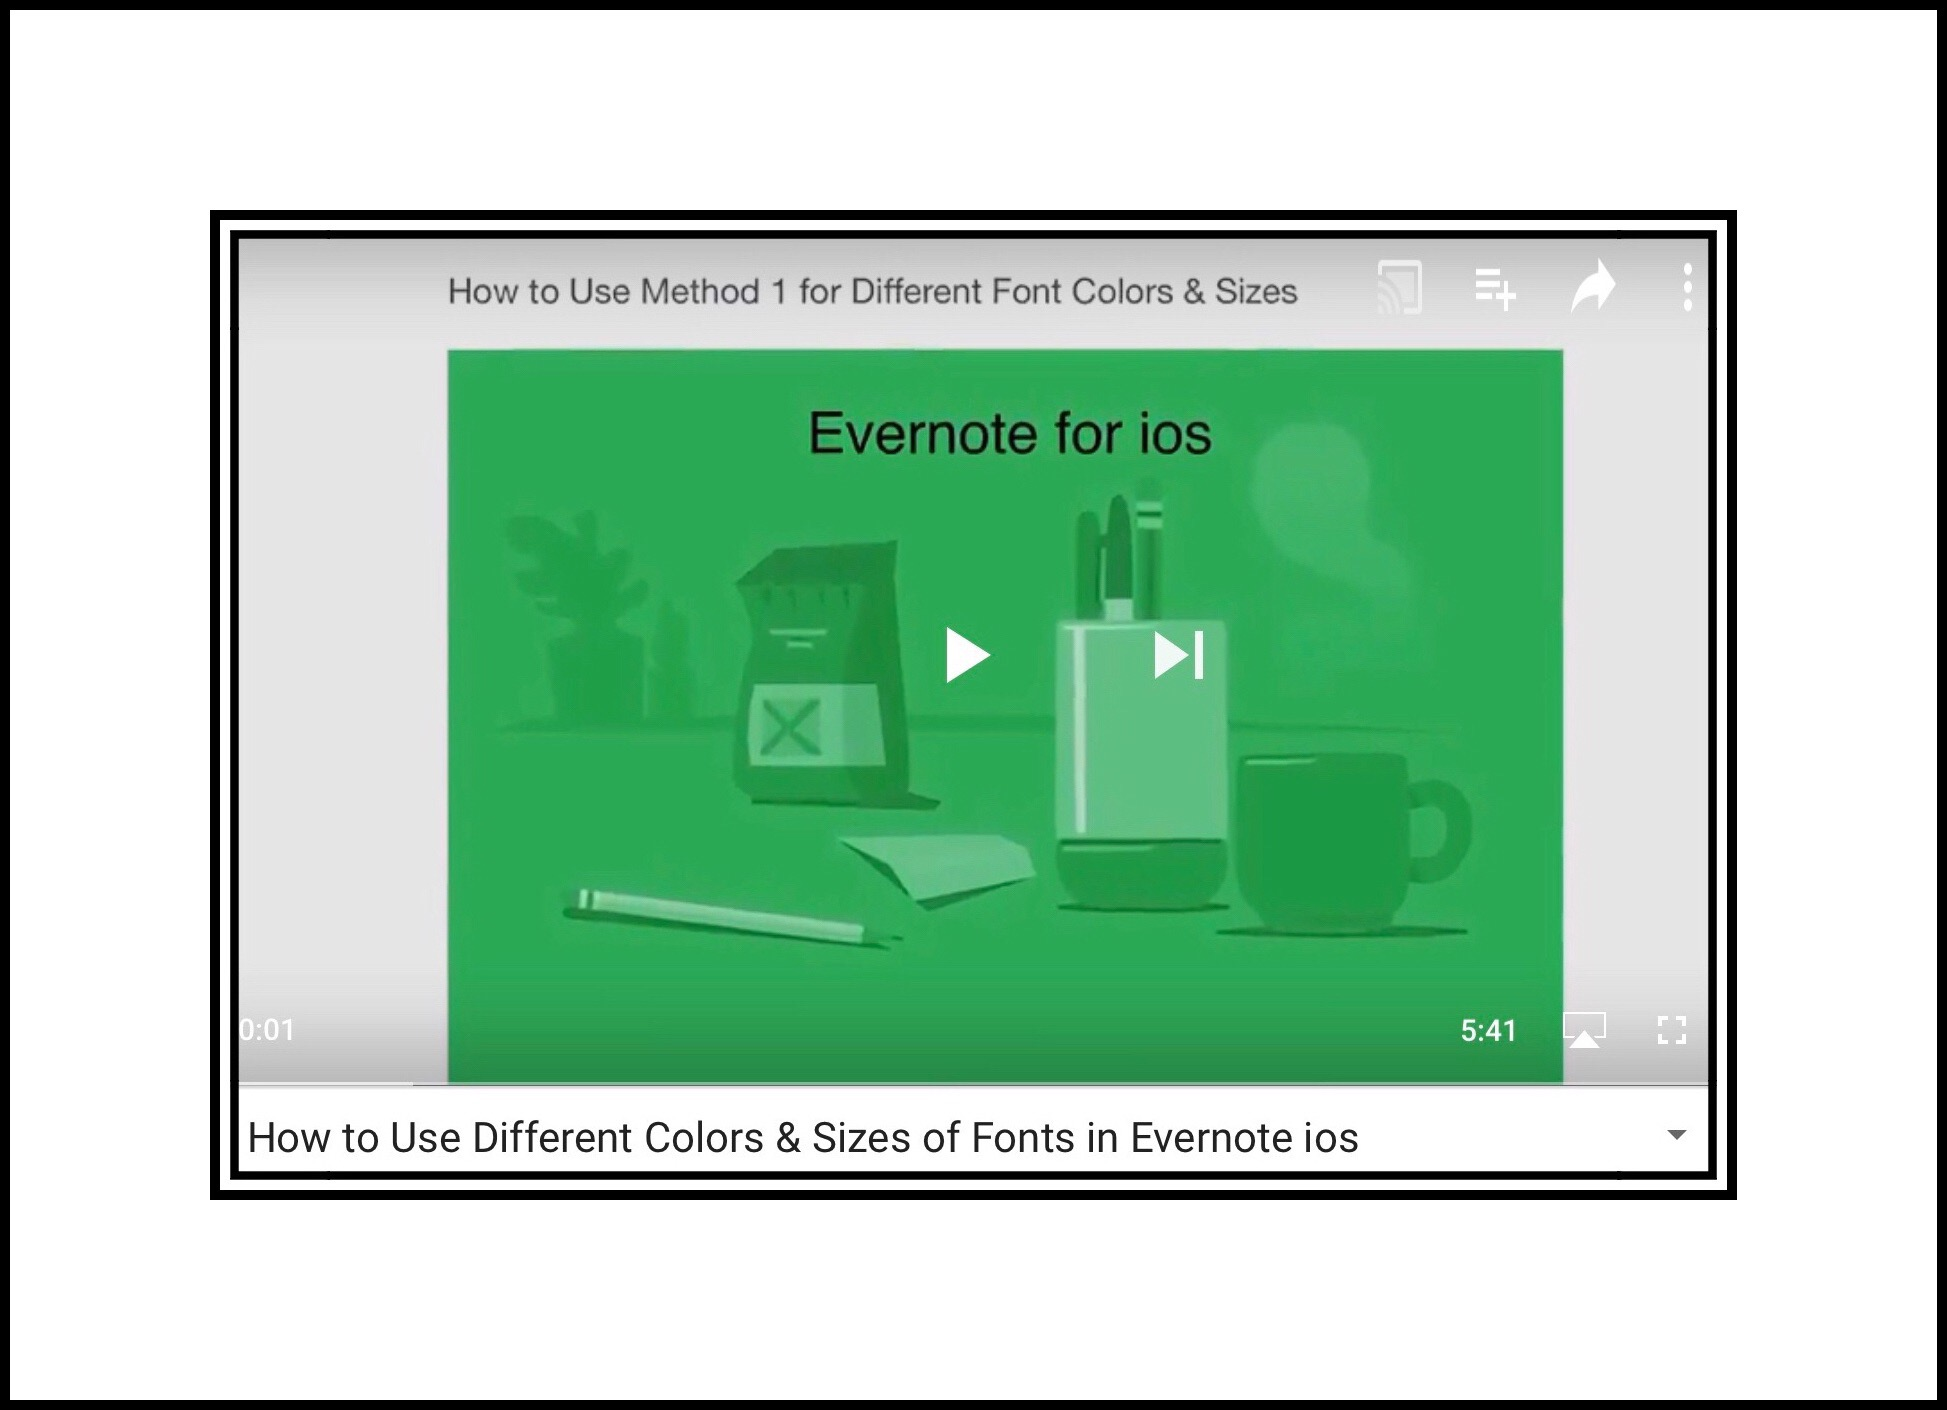 How to Use Different Colors & Sizes of Fonts in Evernote ios